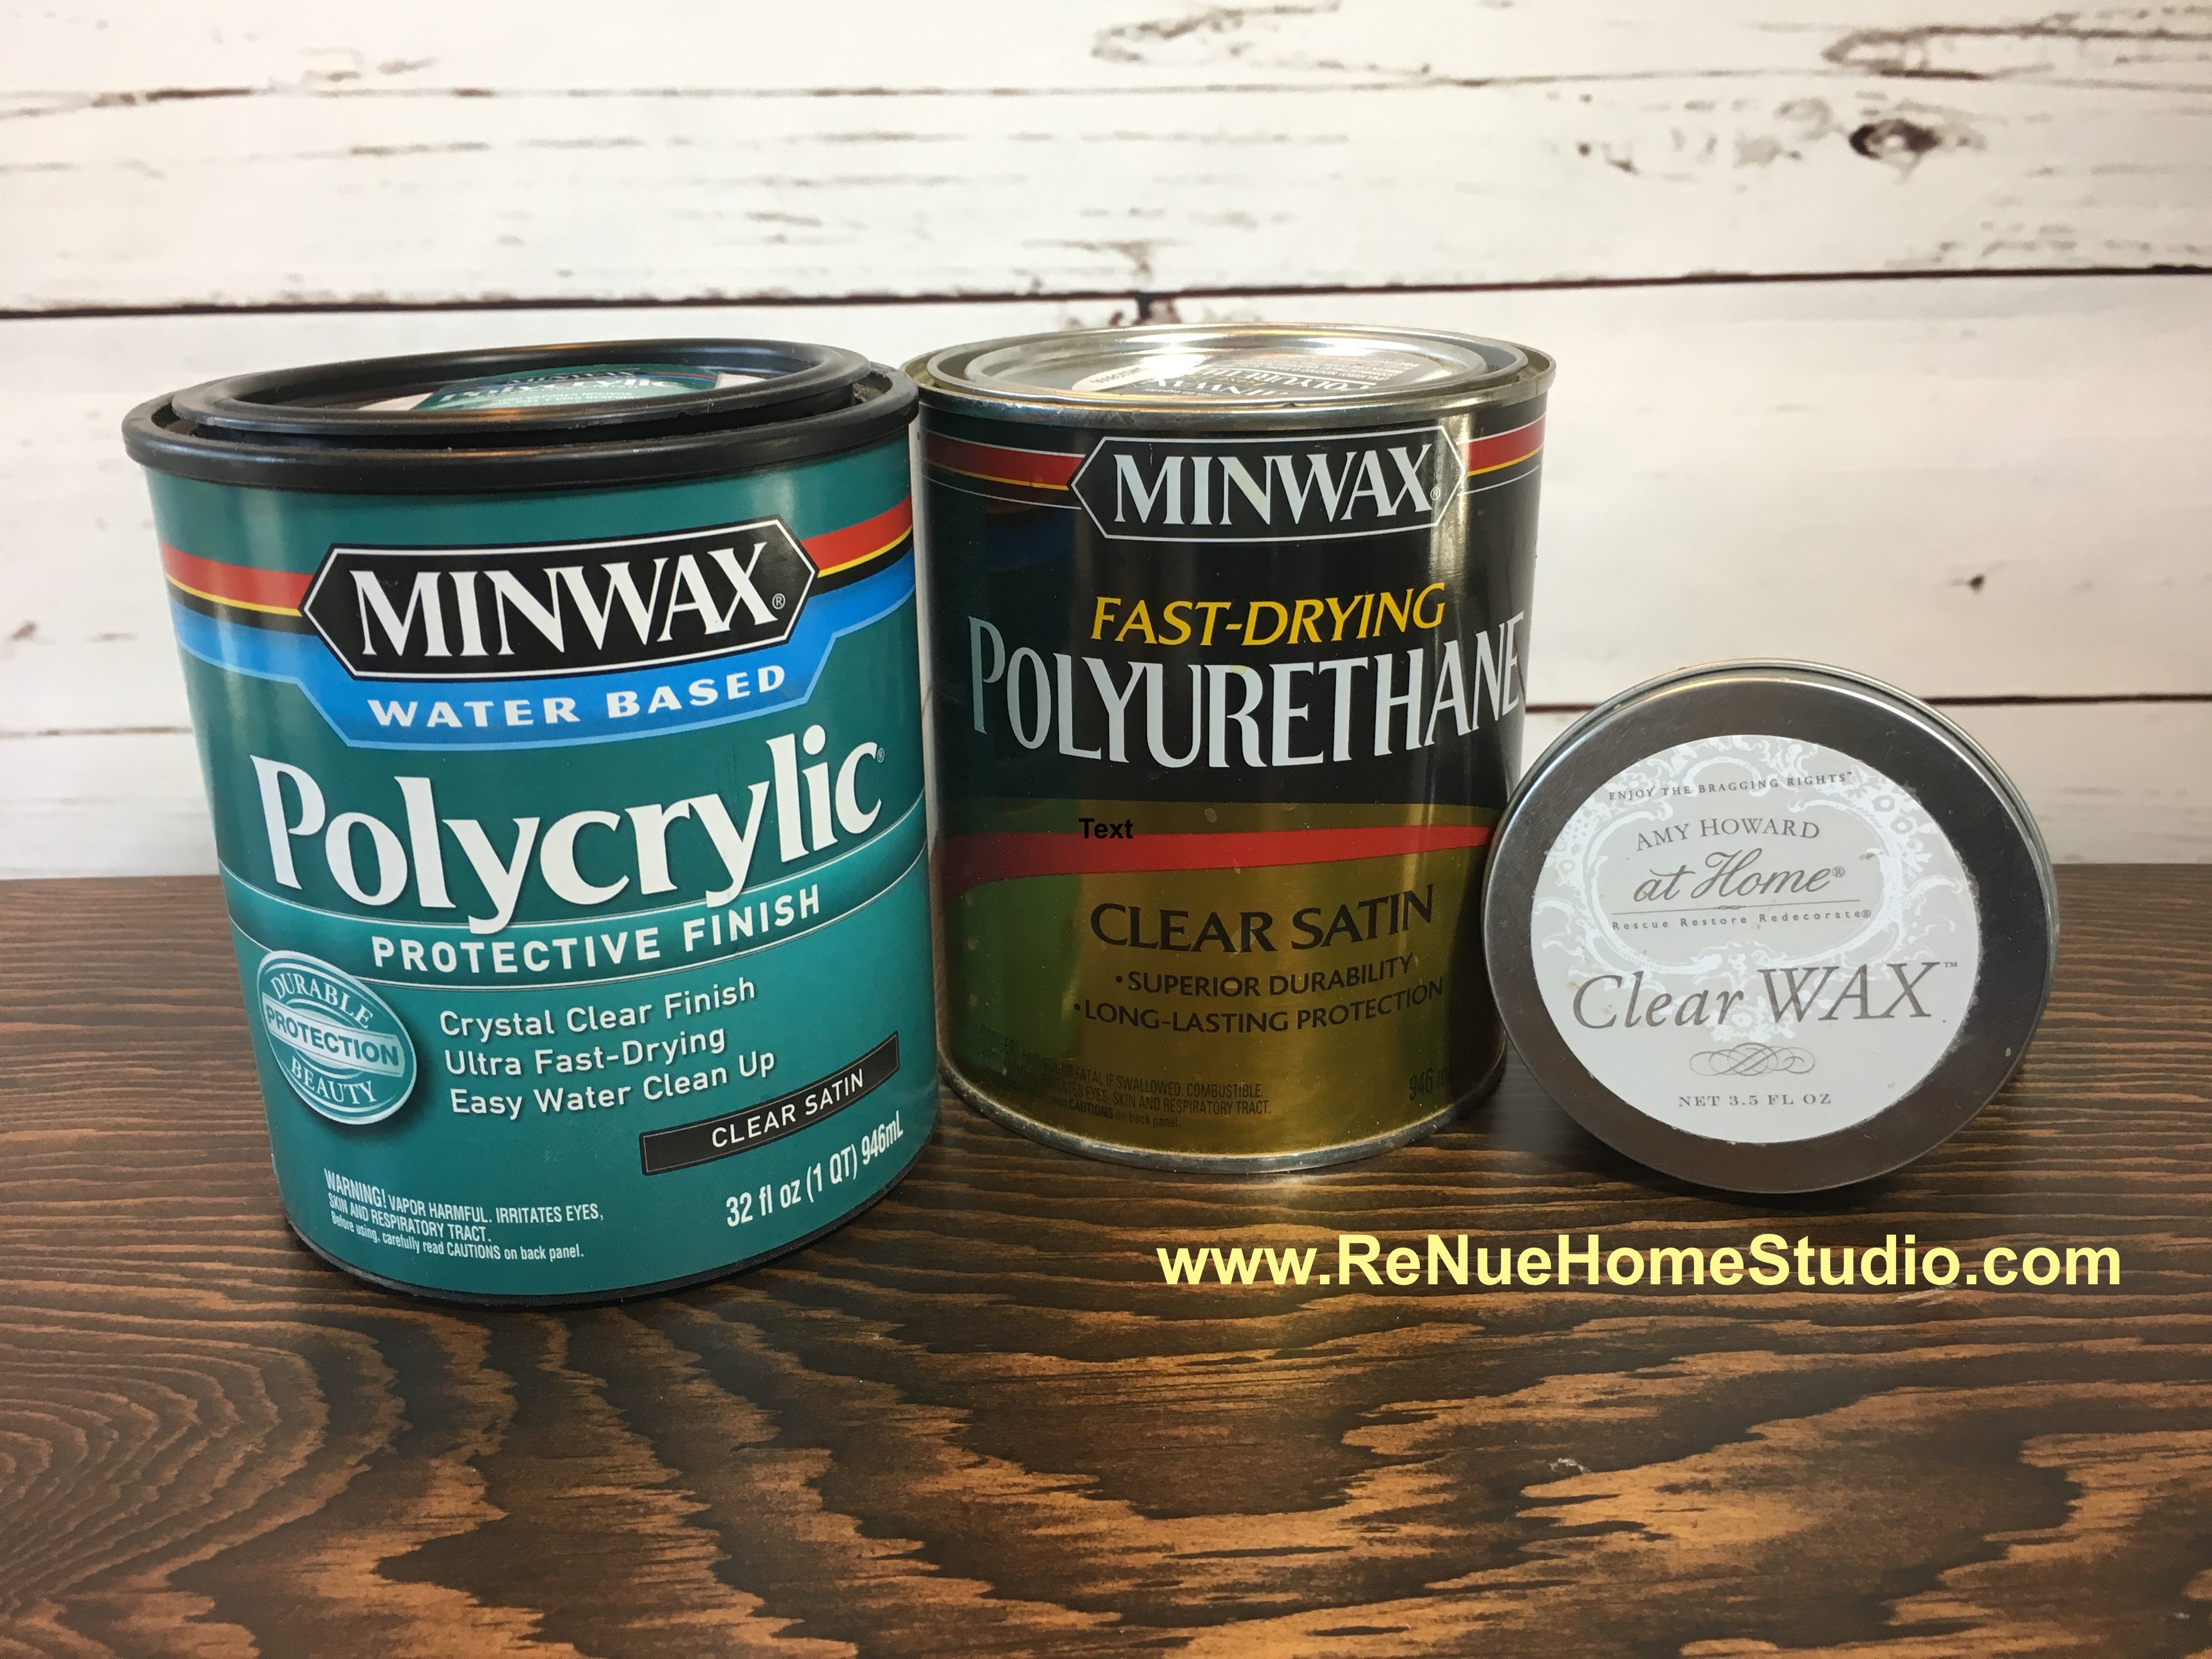 Minwax Polycrylic Matte Vs Satin